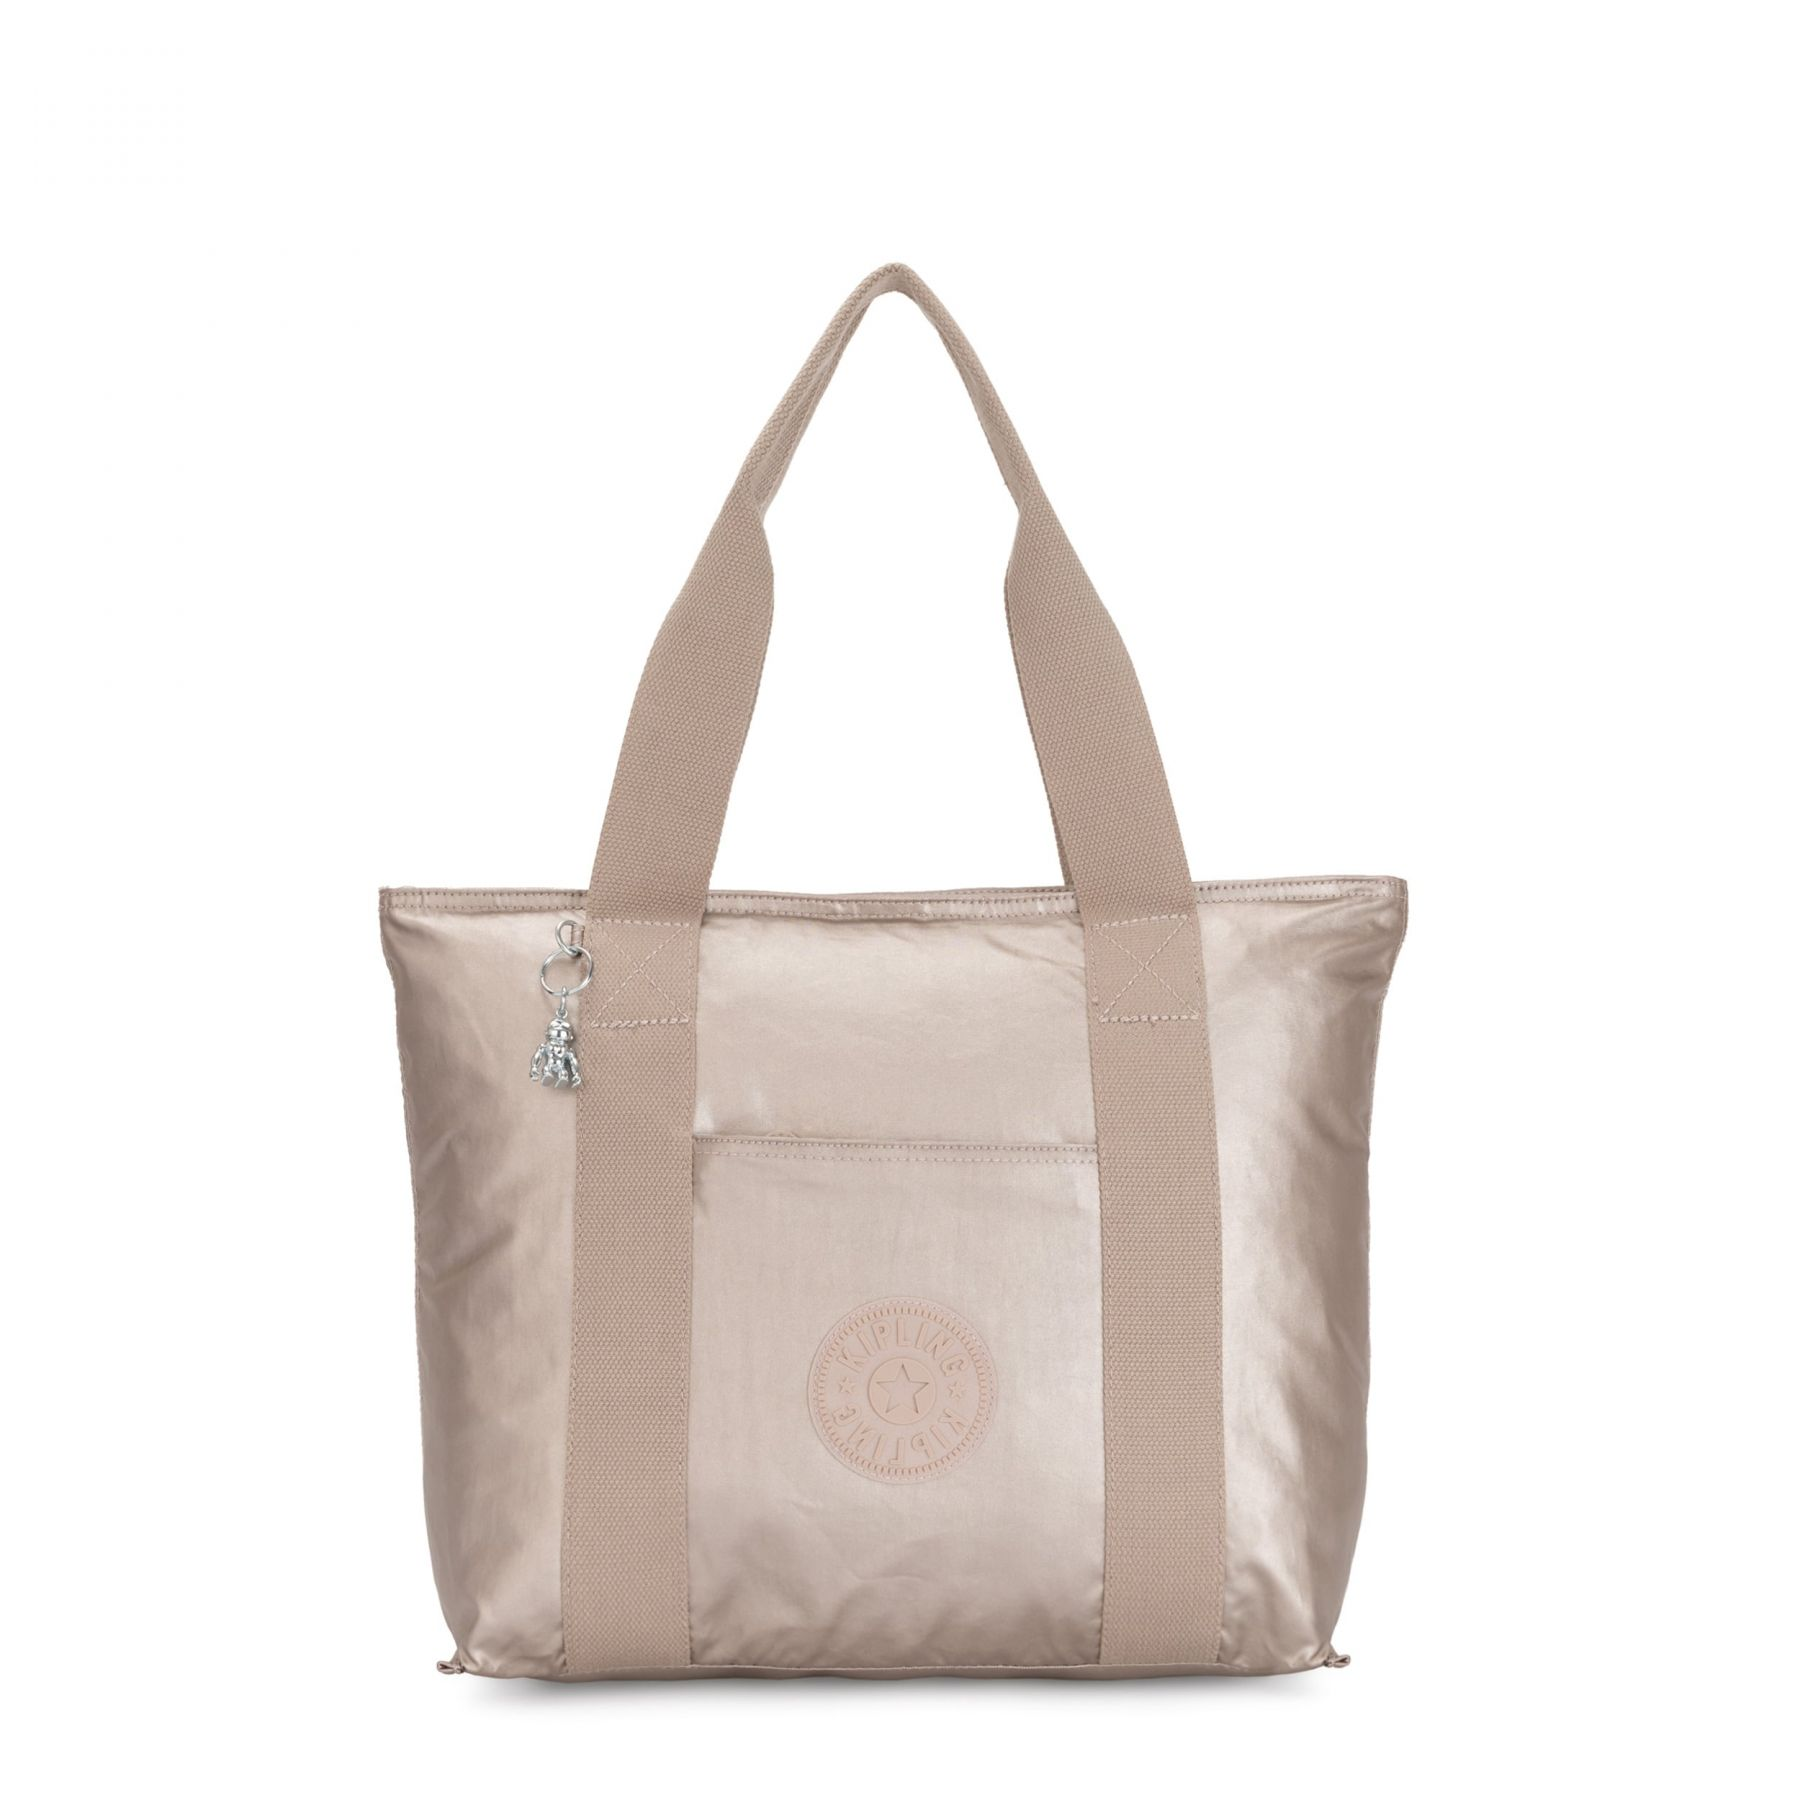 ERA M BAGS by Kipling - Front view